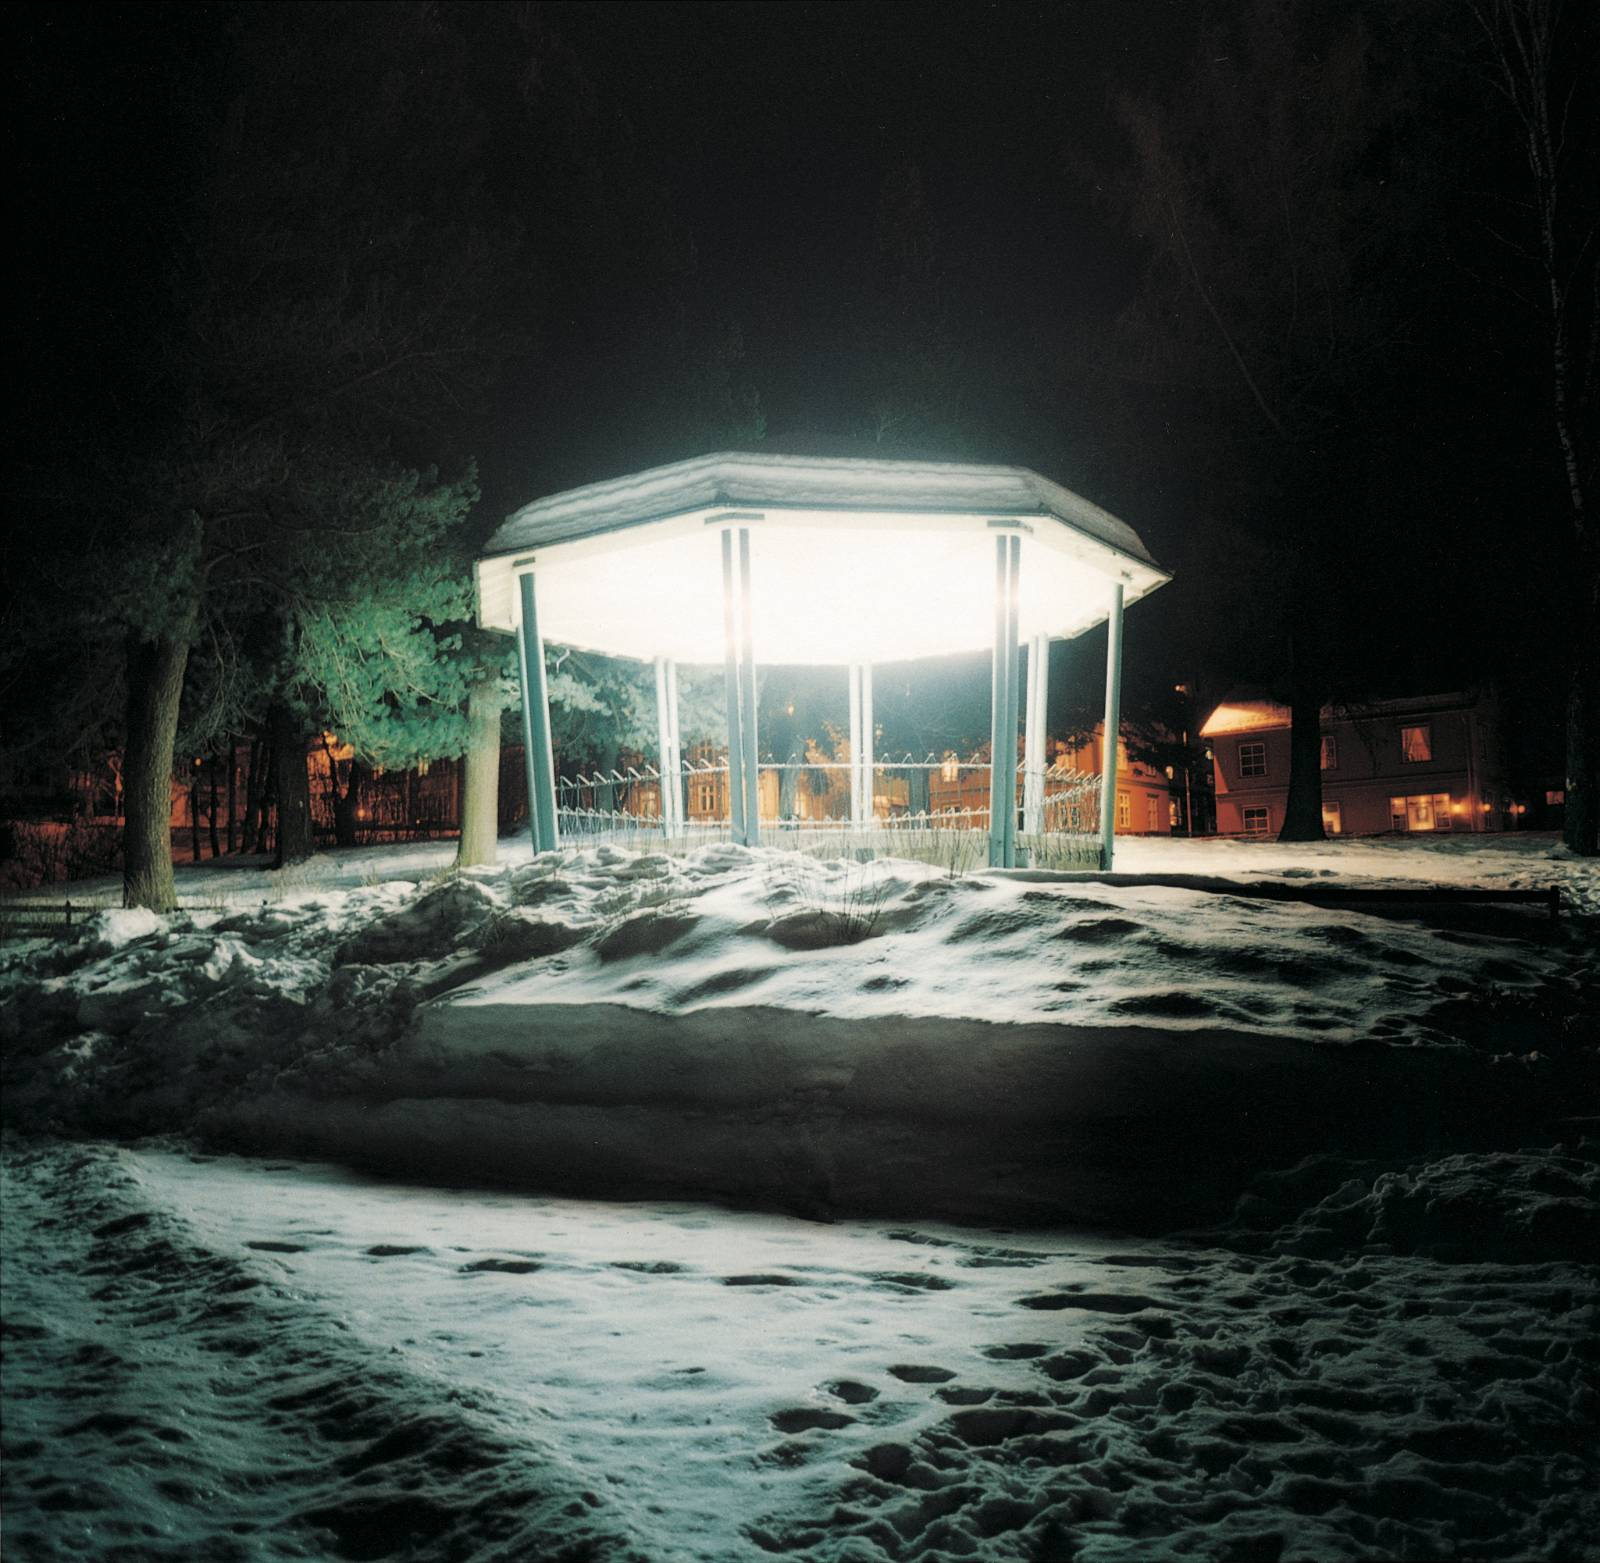 You Should Have Left the Light On, 2002, C-print, 100 x 100 cm